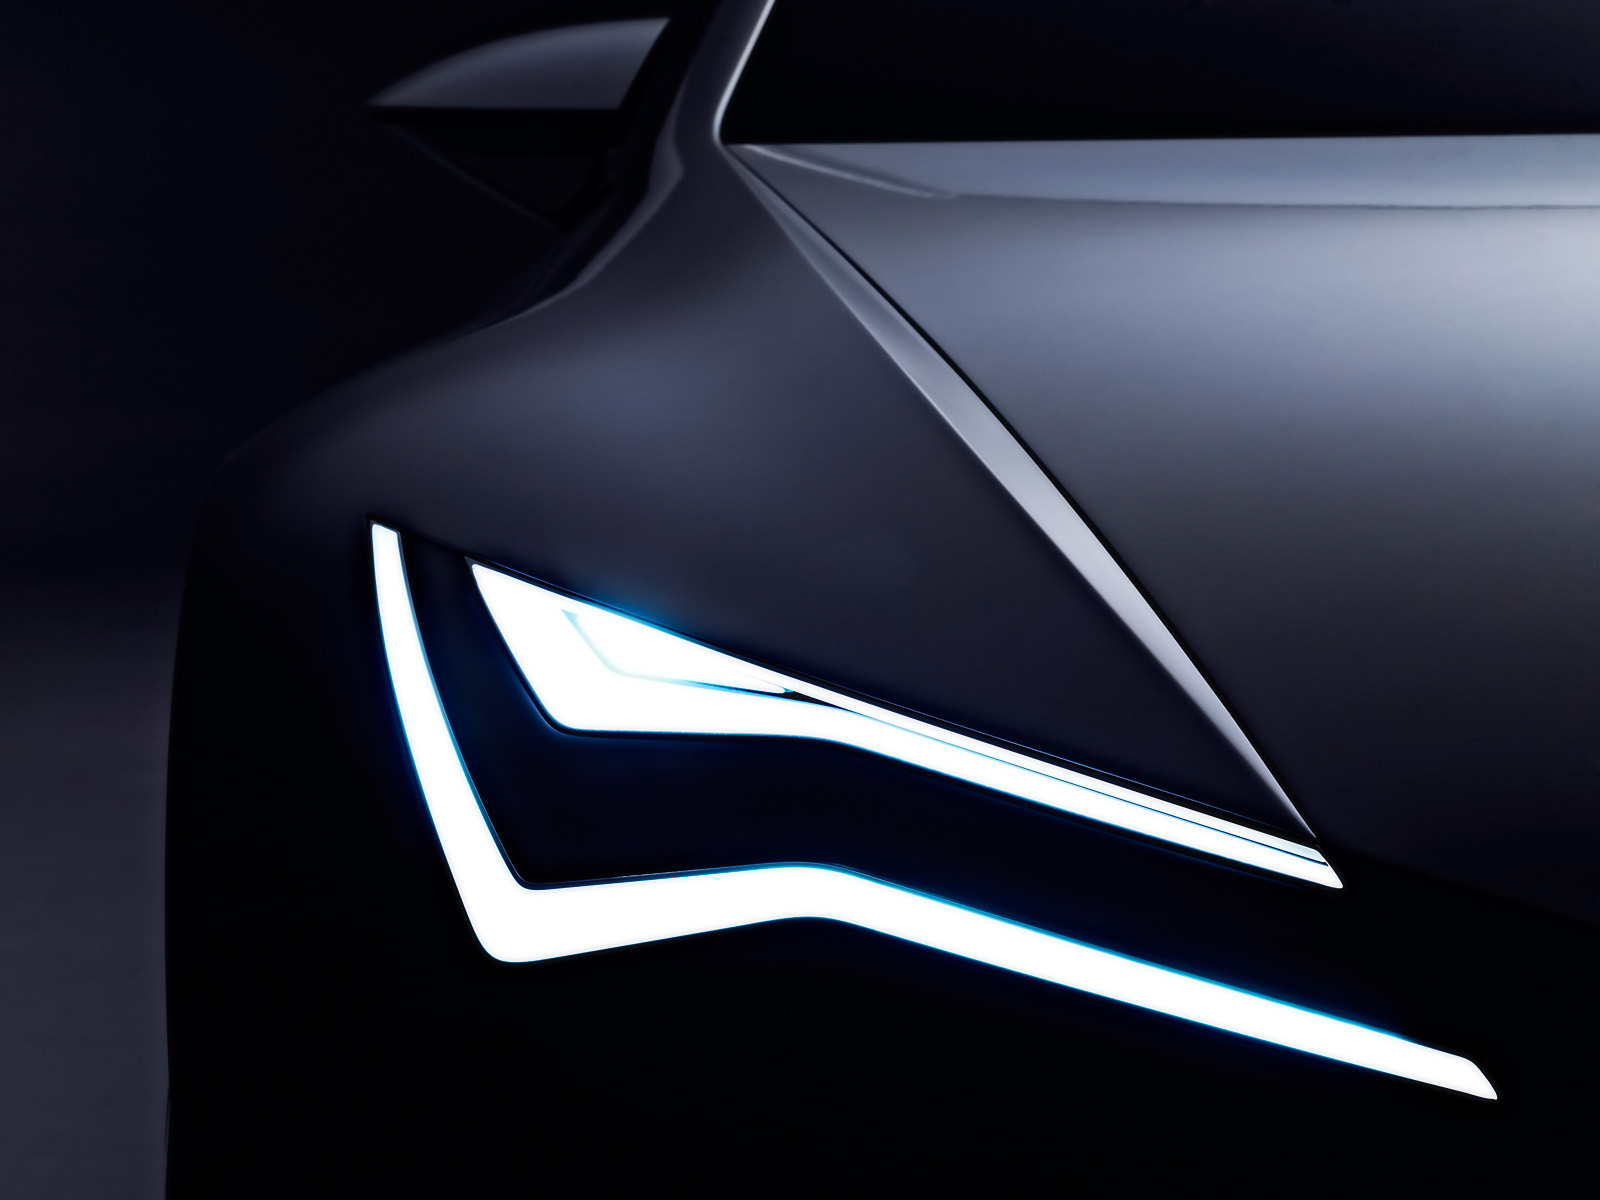 Car Logo Wallpapers For Mobile Seat Ibe Light Wallpapers Seat Ibe Light Stock Photos